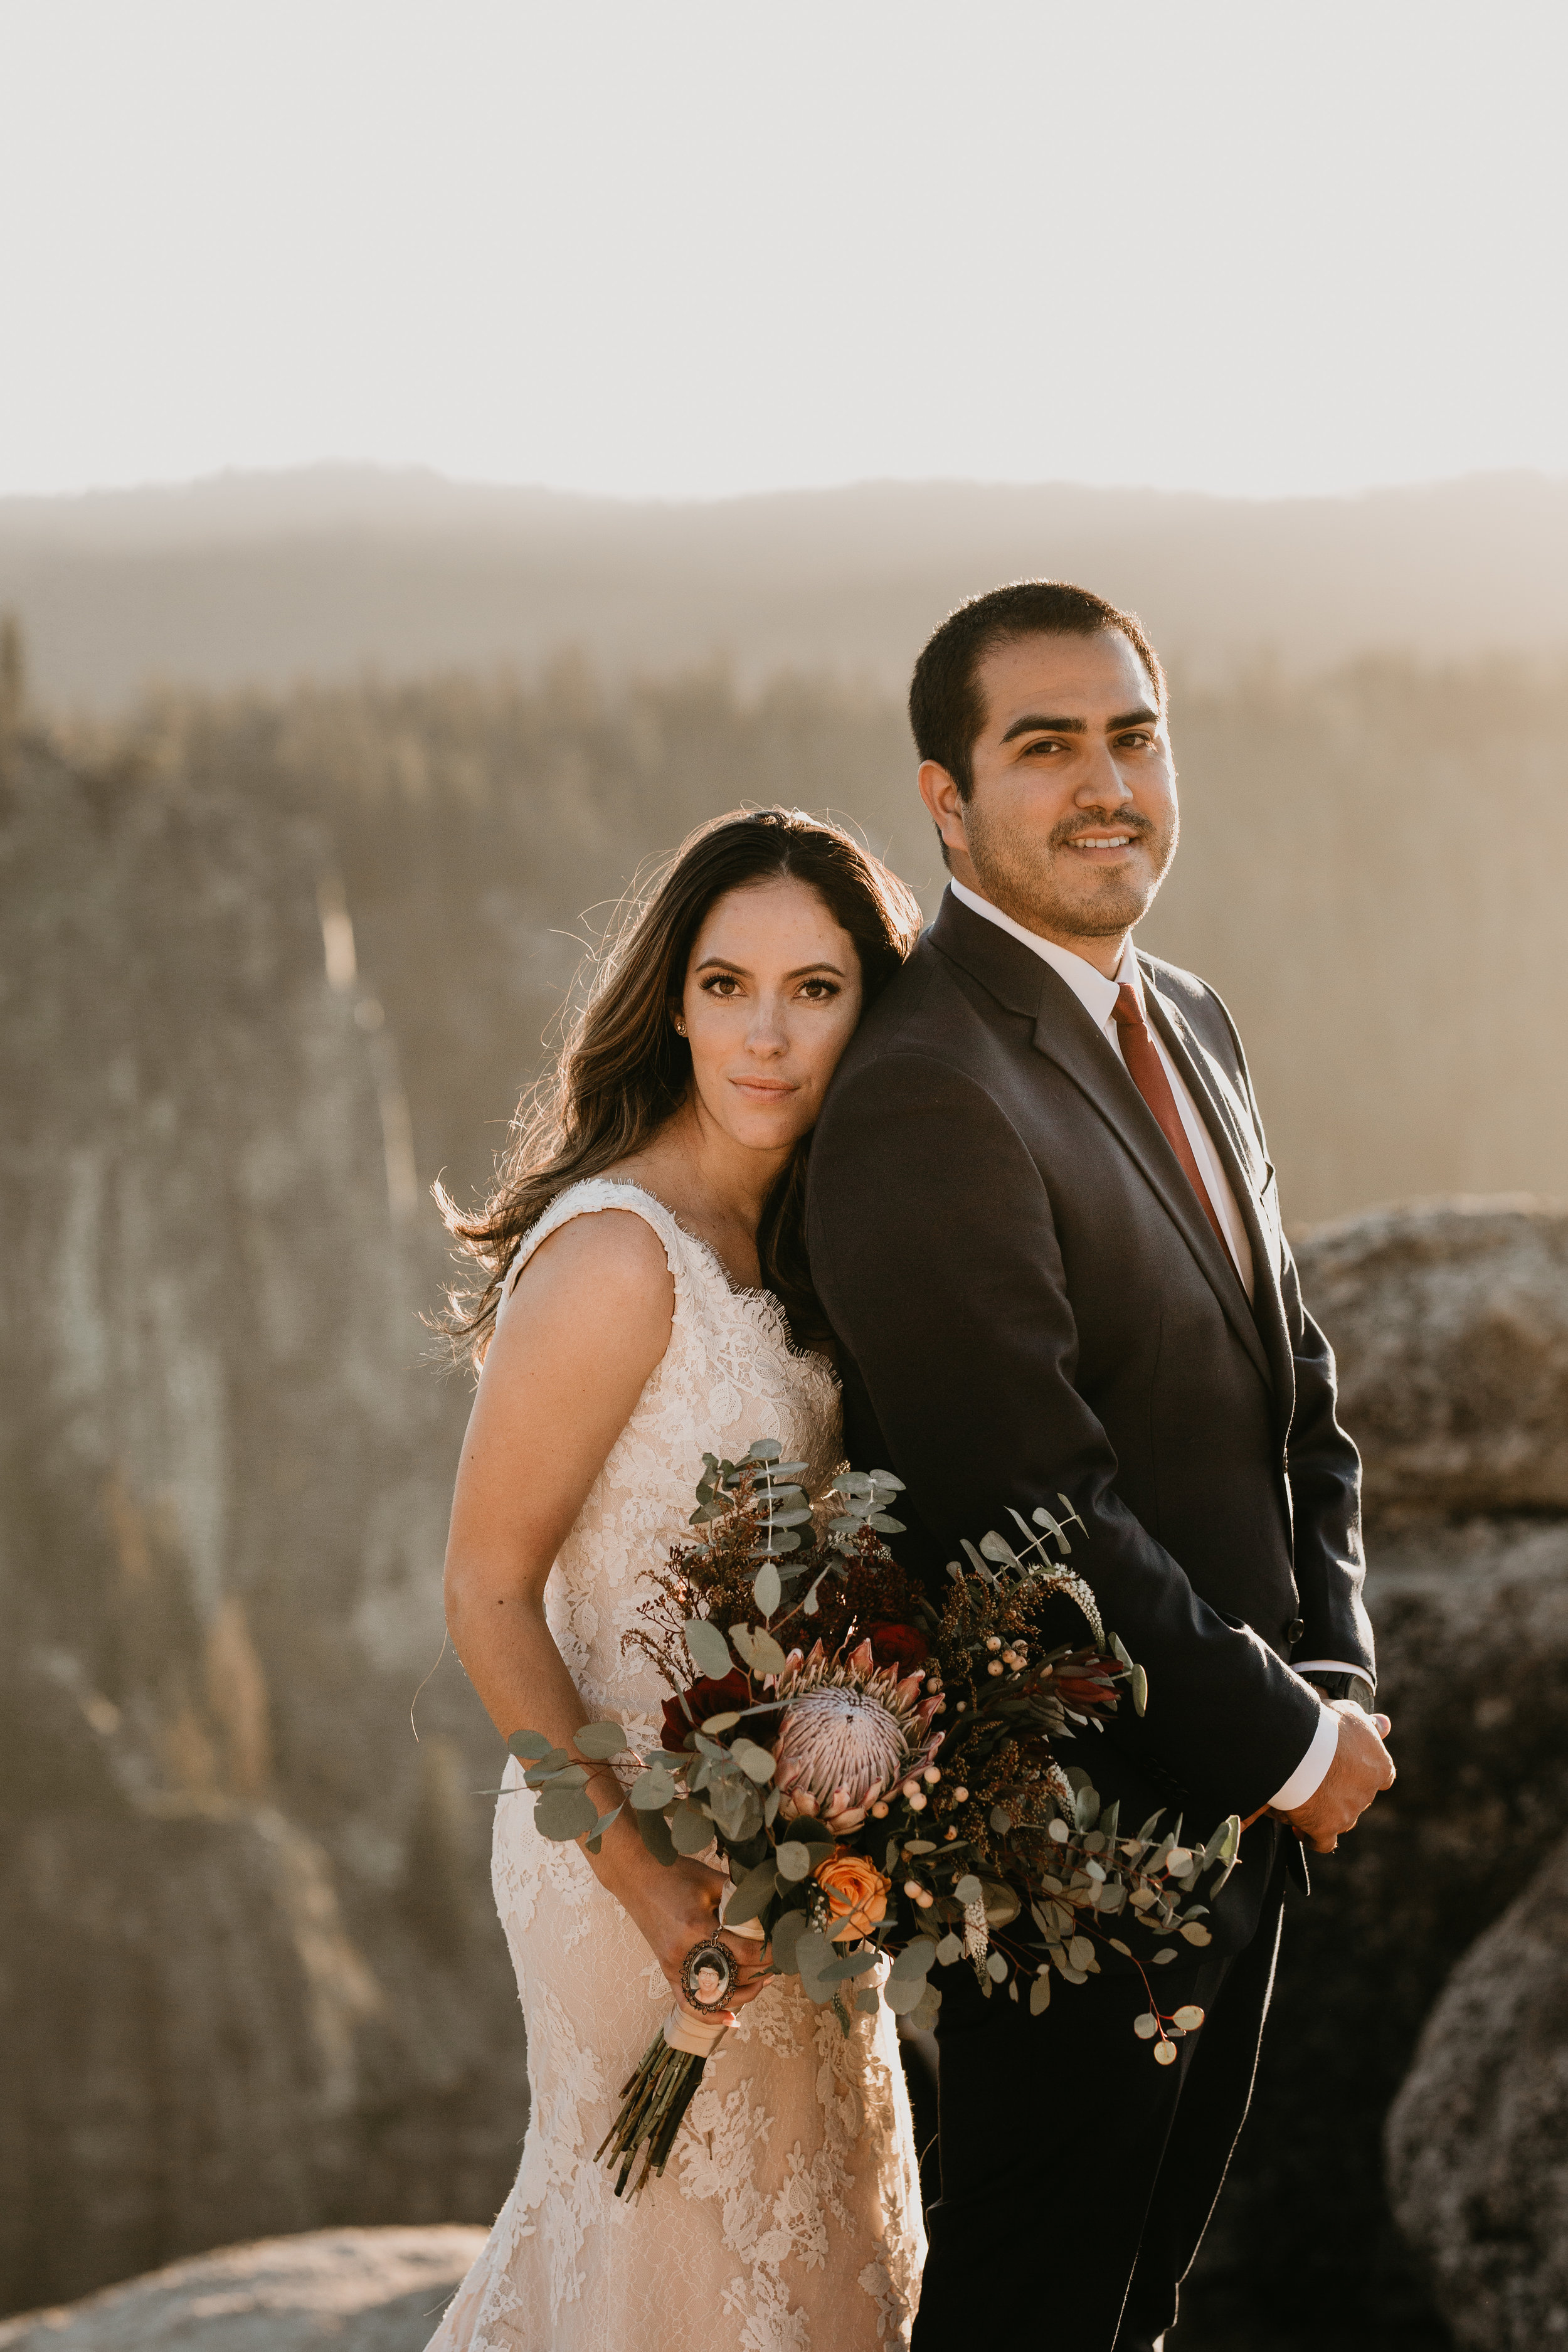 nicole-daacke-photography-intimate-elopement-wedding-yosemite-national-park-california-taft-point-sunset-photos-yosemite-valley-tunnel-view-first-look-sunrise-golden-granite-hiking-adventure-wedding-adventurous-elopement-photographer-98.jpg